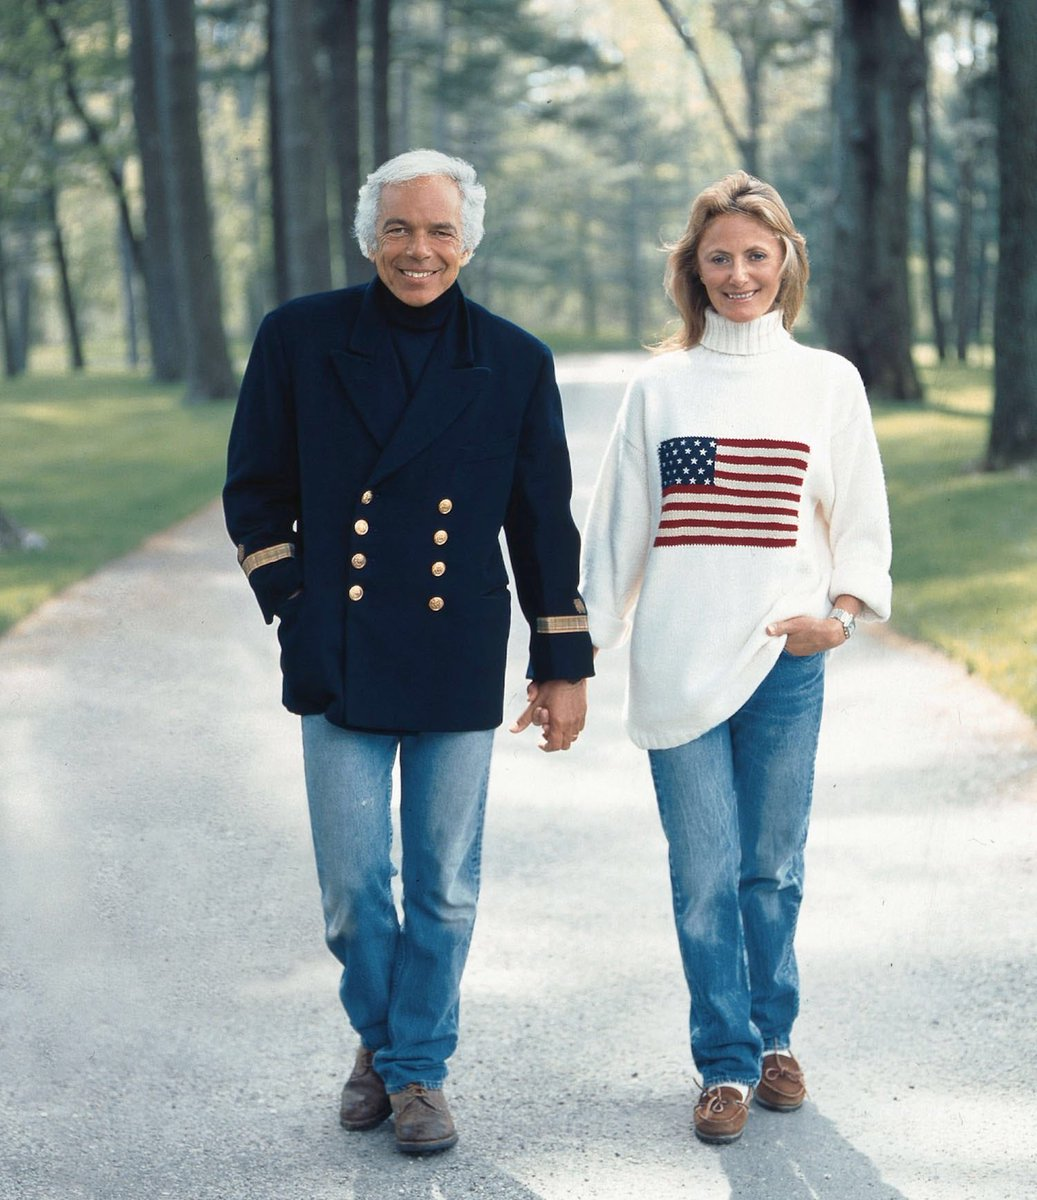 Ralph and Ricky Lauren in Bedford, NY, 1996. #4thOfJuly [Photograph: Victor Skrebneski] https://t.co/1k97saYqDm